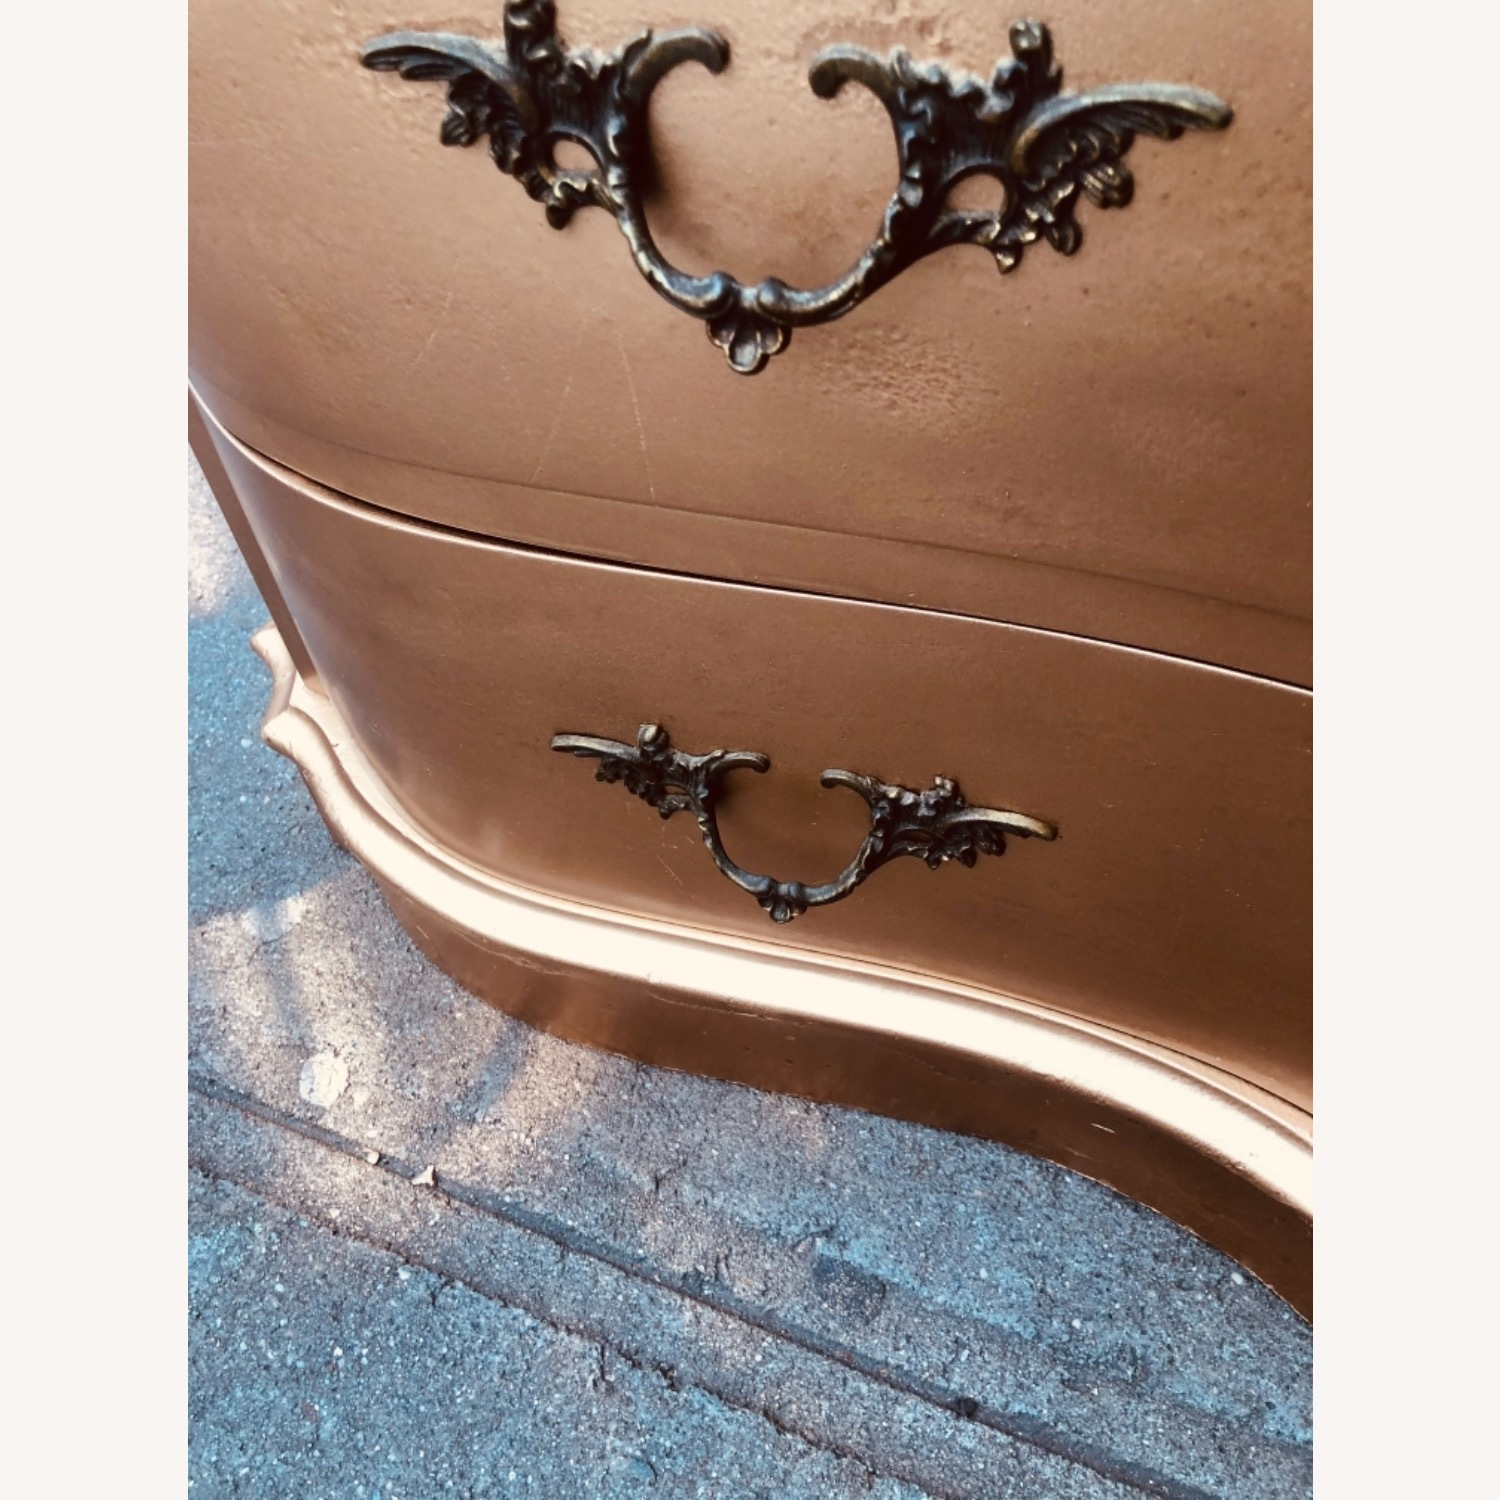 Antique 1920s Gold Painted Cherry Wood Nightstand - image-17